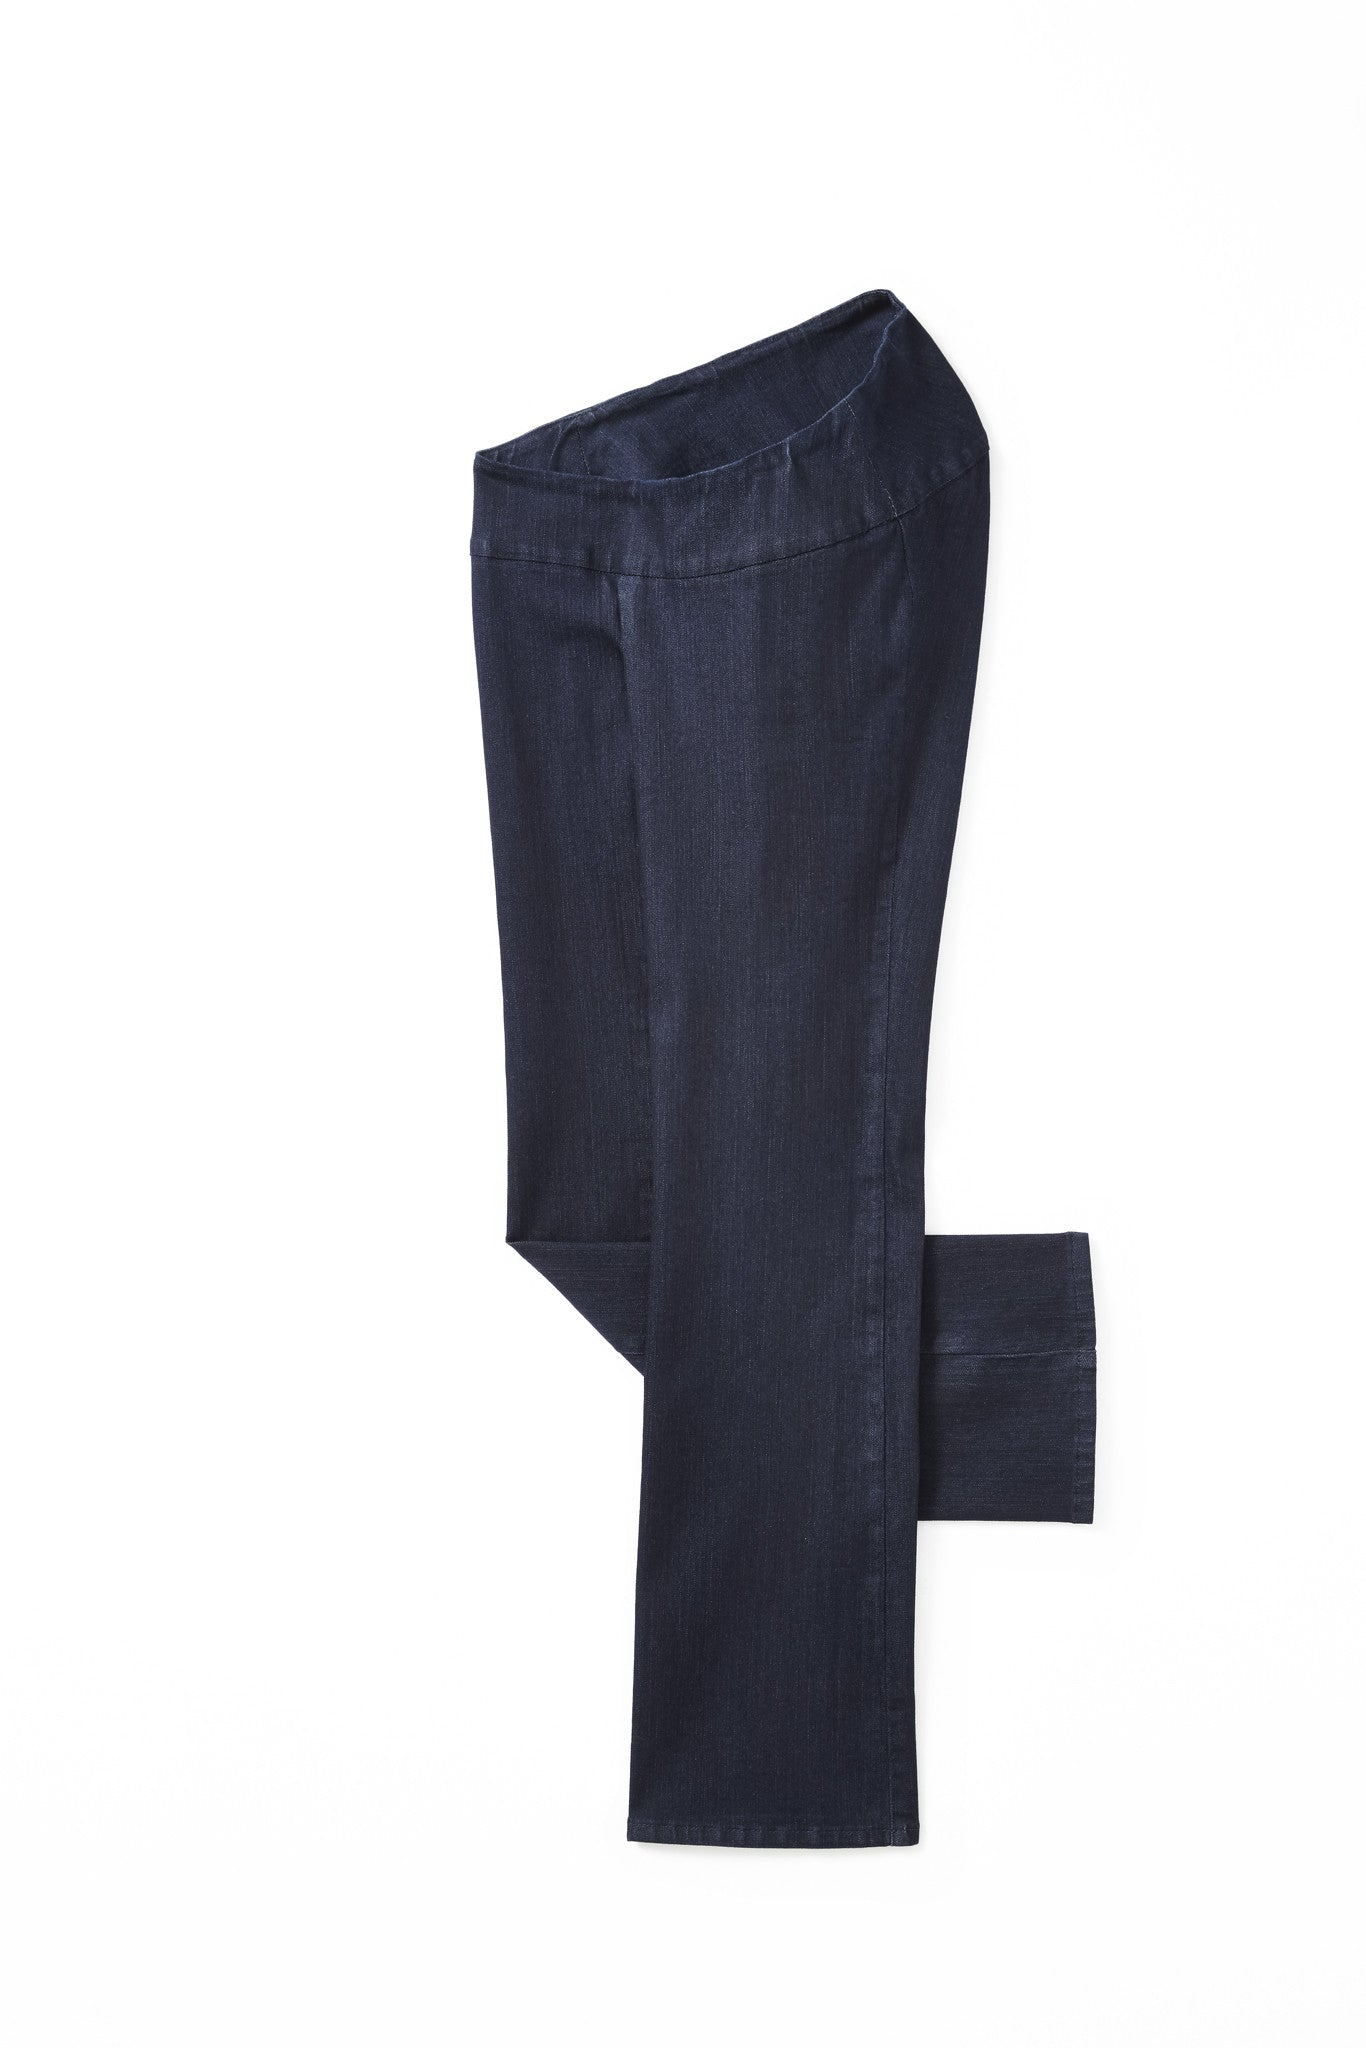 accessible fashion - straight leg jeans yoga waistband